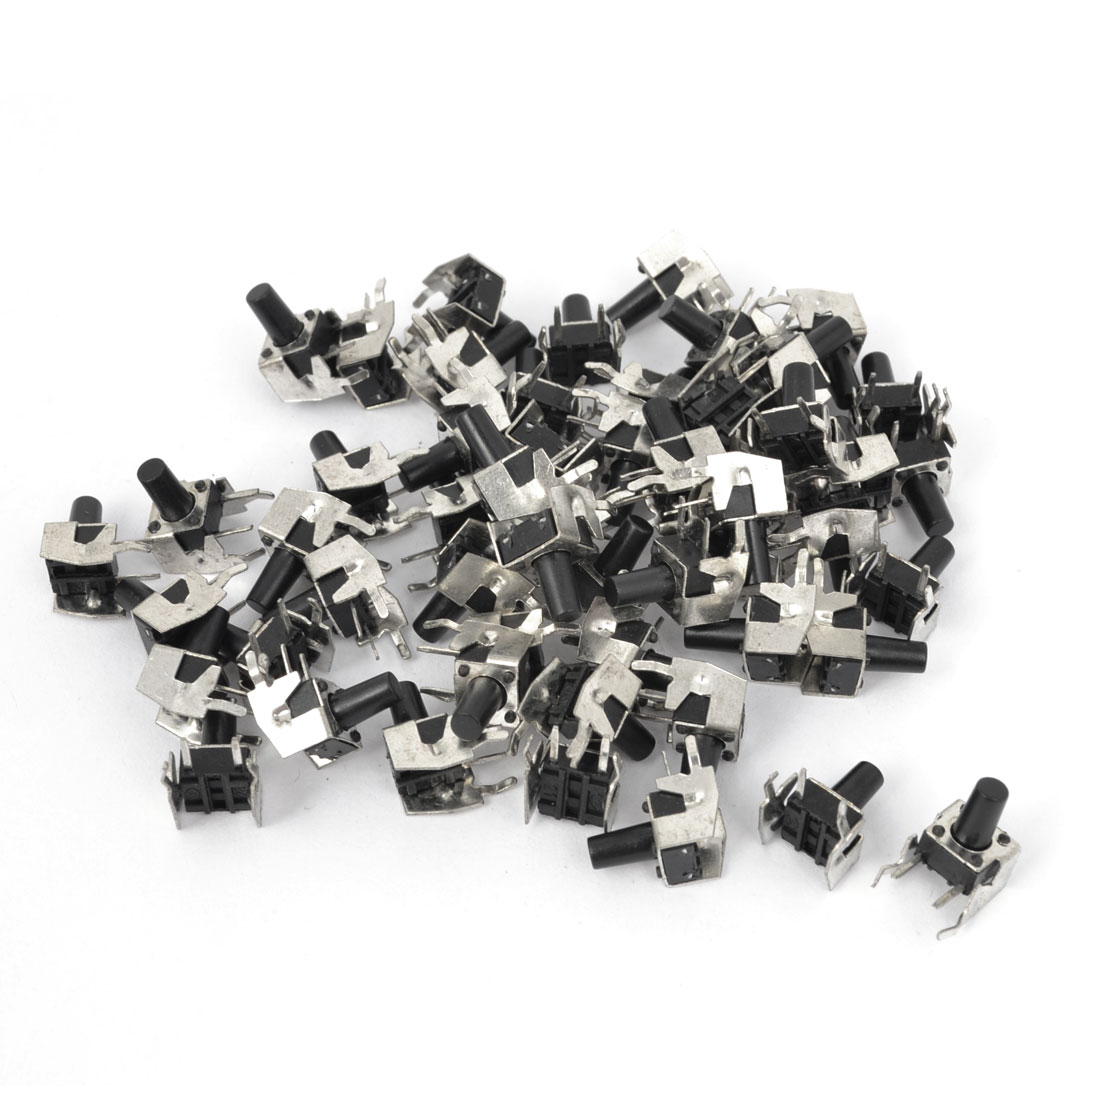 55Pcs Momentary PCB Side Mounting Fixed Bracket Pushbutton Push Button Tact Tactile Switch DIP 2 Terminals 6mmx6mmx9.5mm